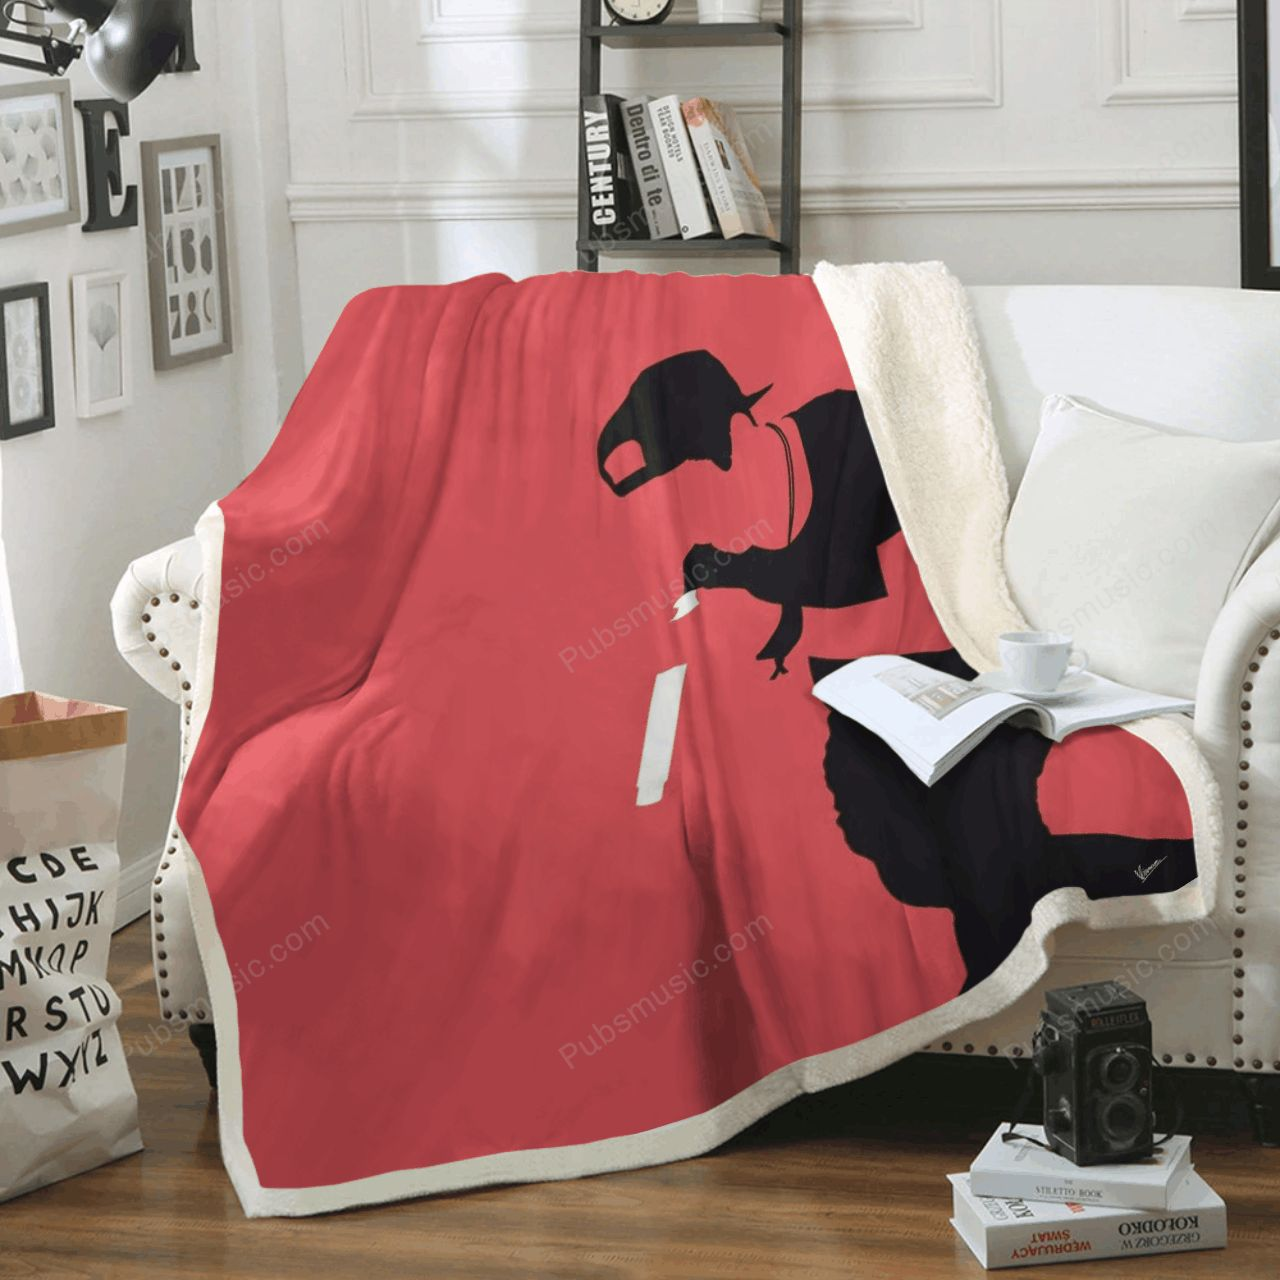 Fleece blanket